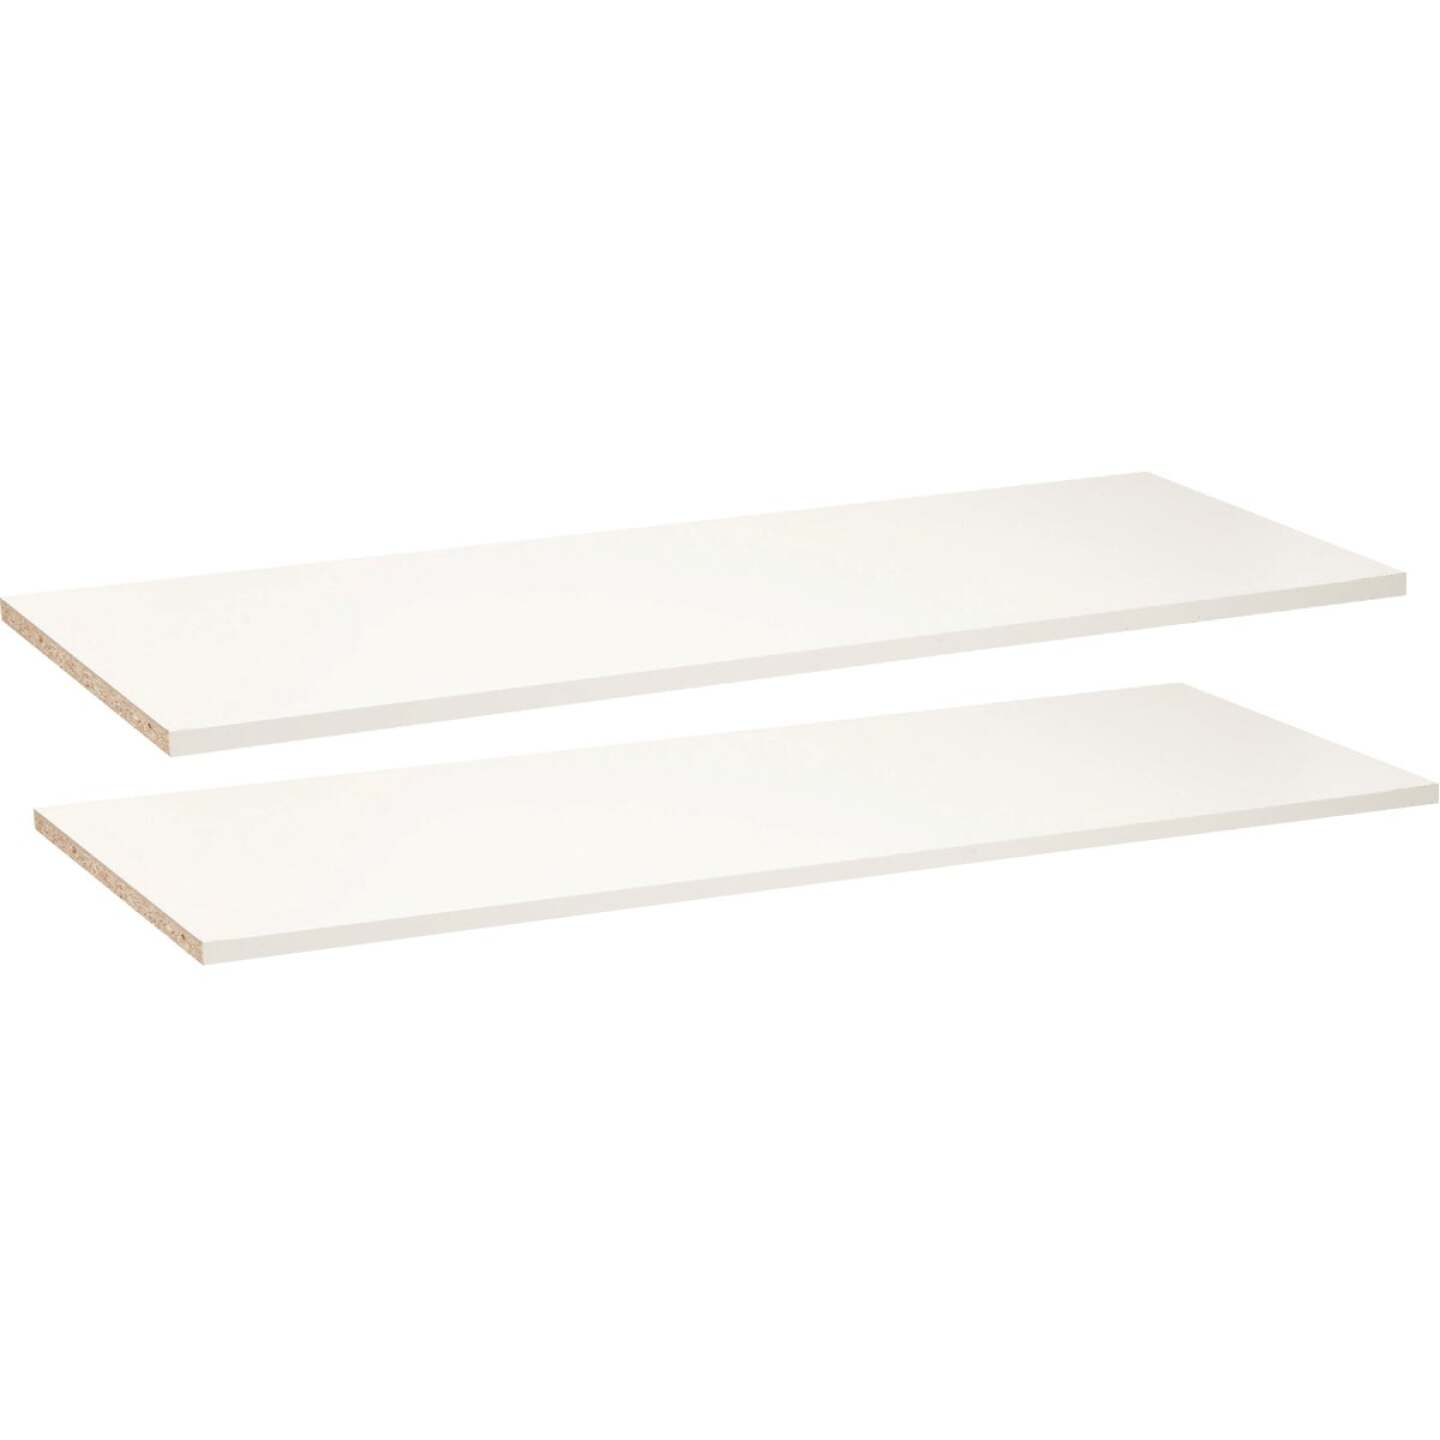 Easy Track 3 Ft. W. x 14 In. D. Laminated Closet Shelf, White (2-Pack) Image 3